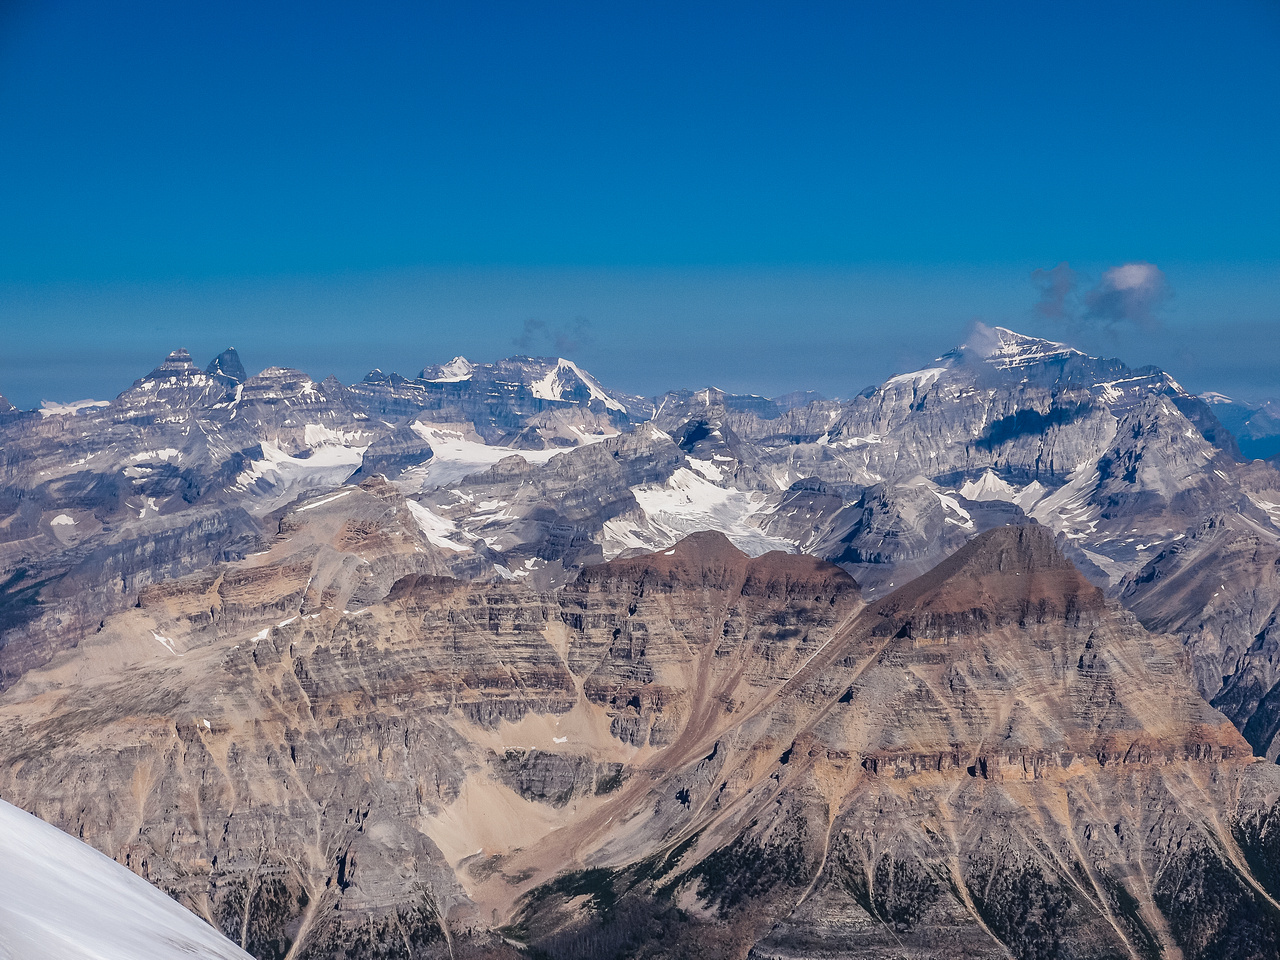 Looking over Whymper - it looks tiny, towards Lake Louise peaks including (R to L) Deltaform, Hungabee, Huber, Victoria and Temple